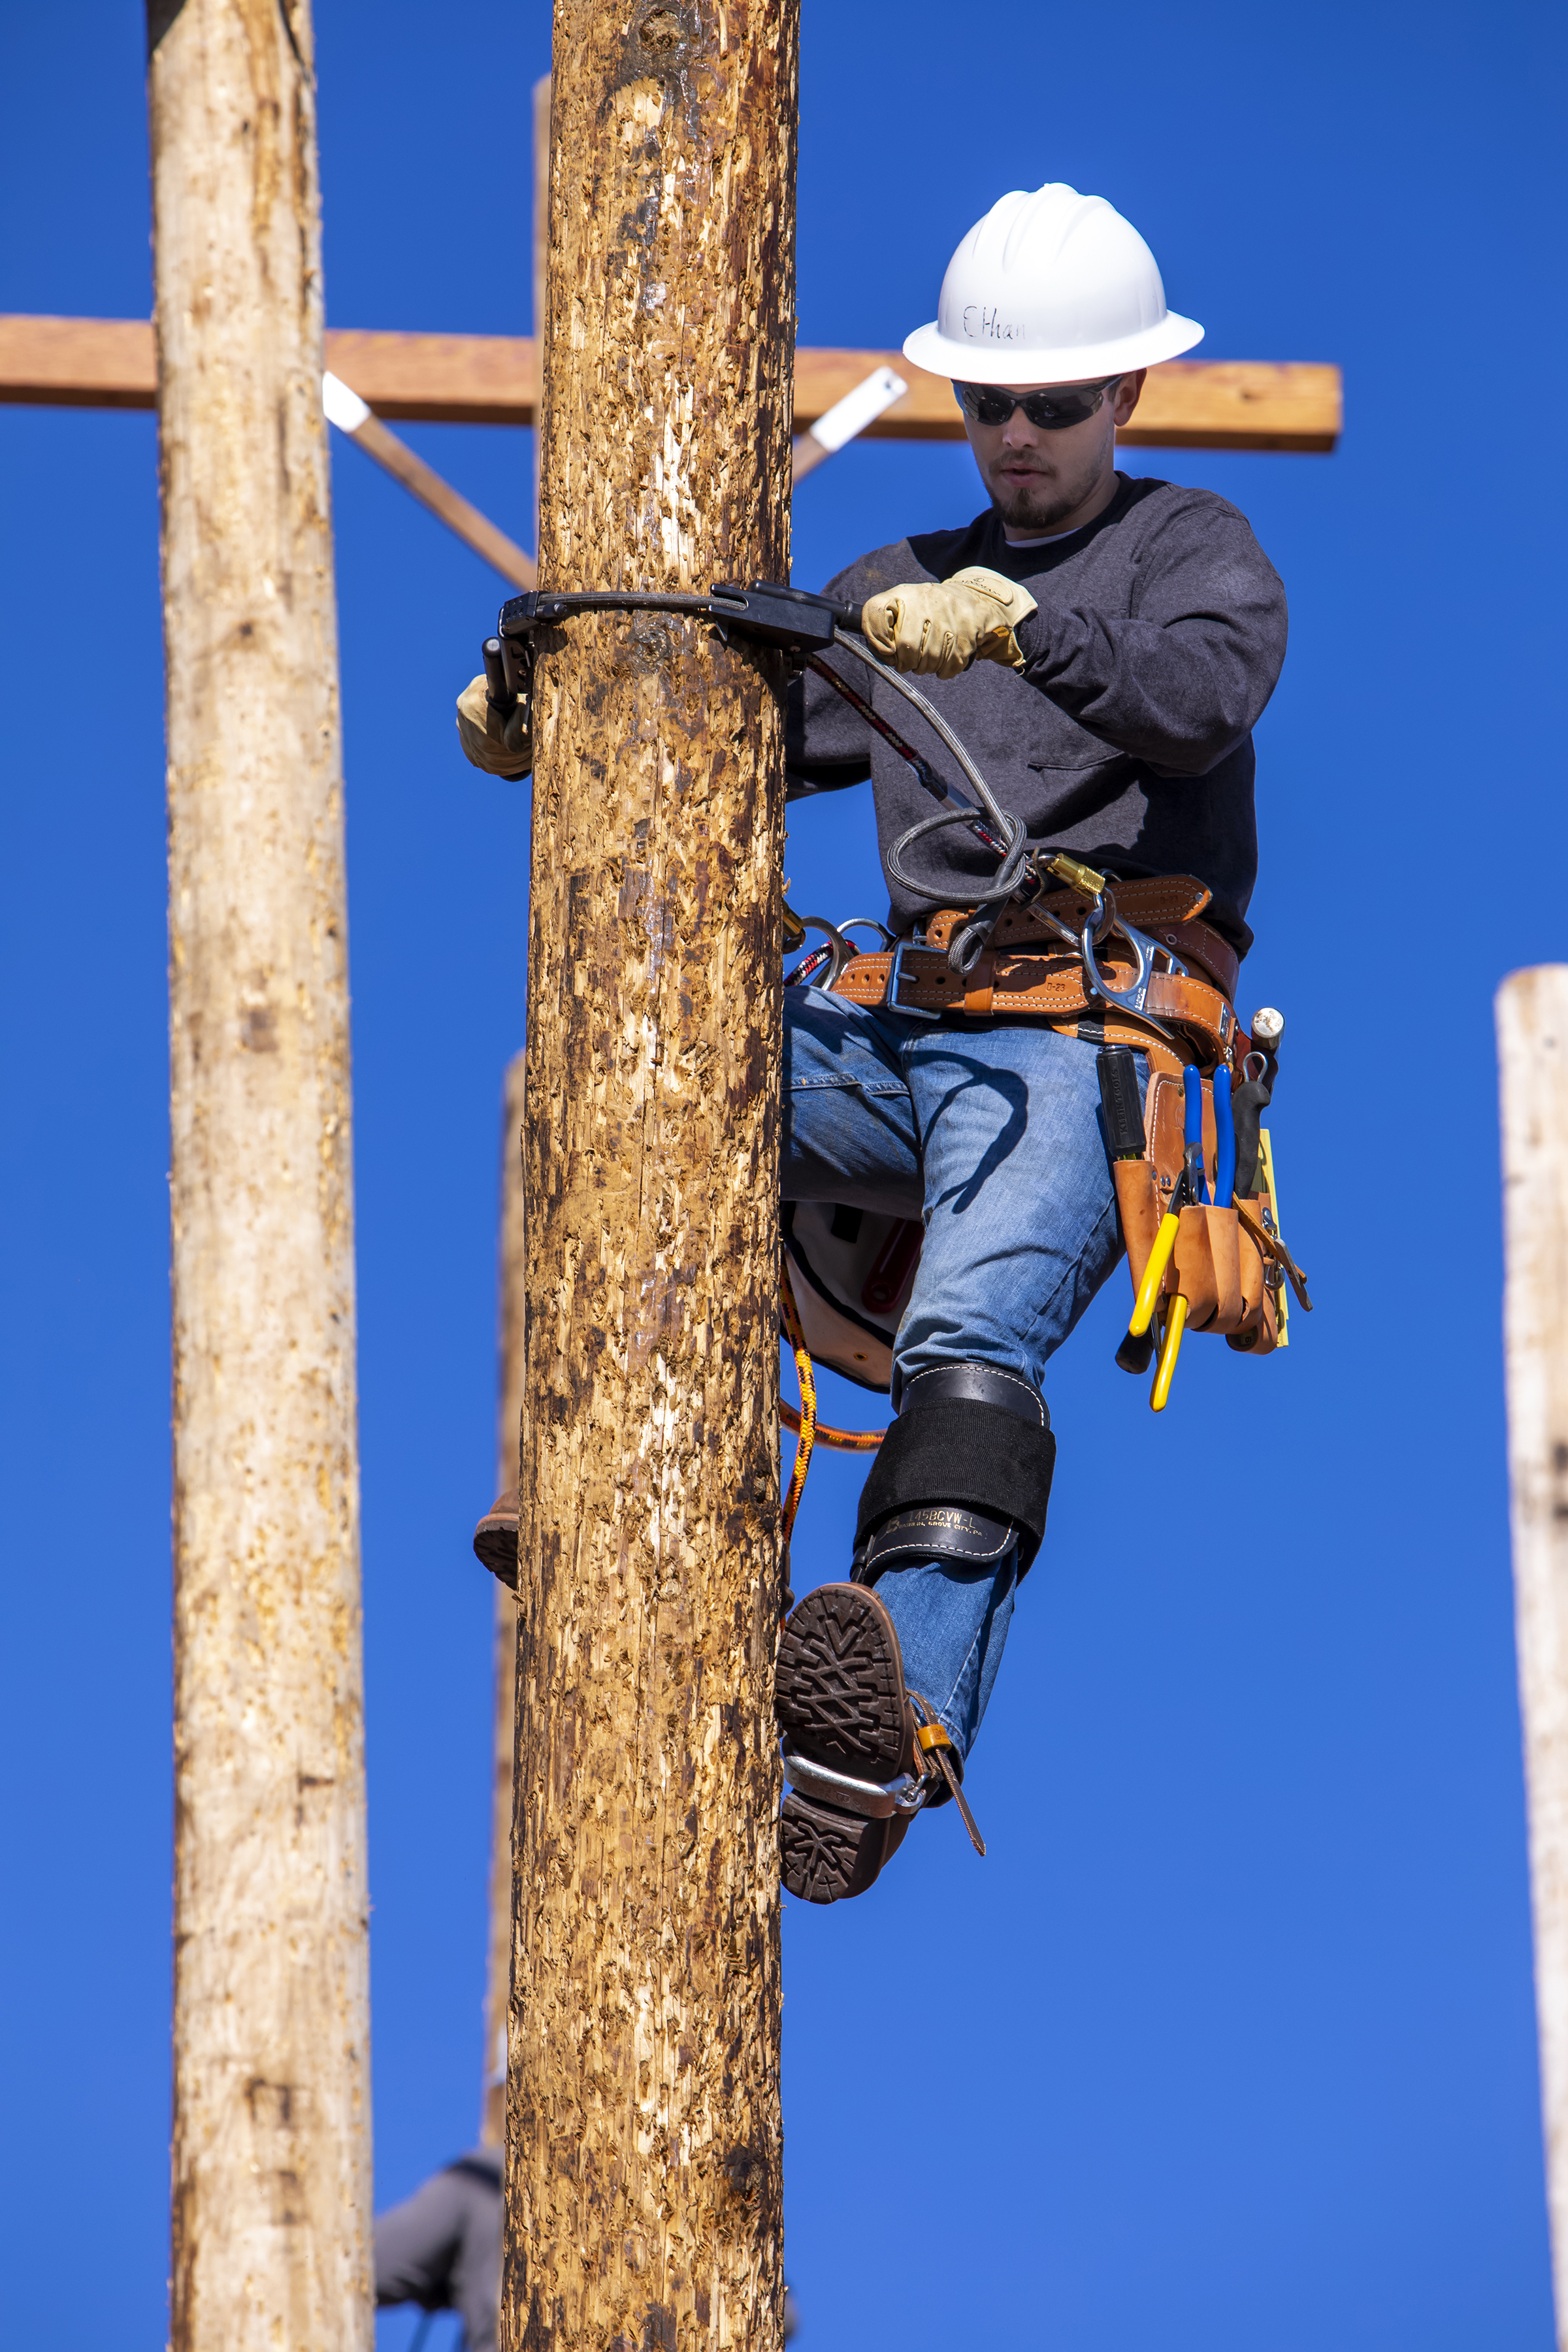 Ethan climbs a line worker pole